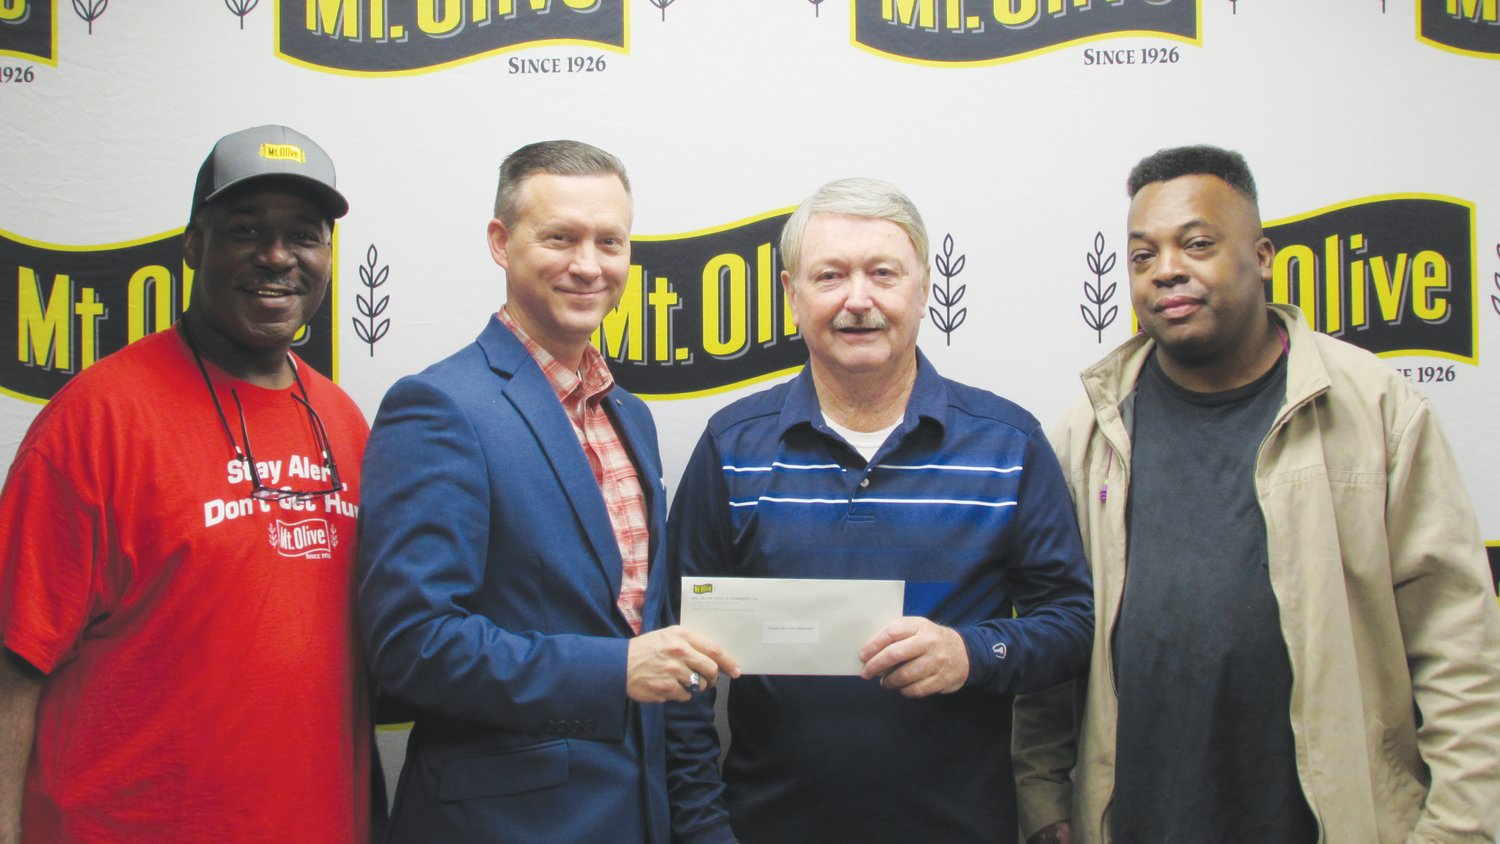 Mt. Olive Pickle Company's Employees Community Fund Chairman Patrick Muston, second from left, presents a check for $1,775 to Waylon Southerland, treasurer at Pleasant Grove Volunteer Fire and EMS. Also pictured is Mt. Olive Pickle Employees Community Fund members Ronnie Core and Anthony Warren.